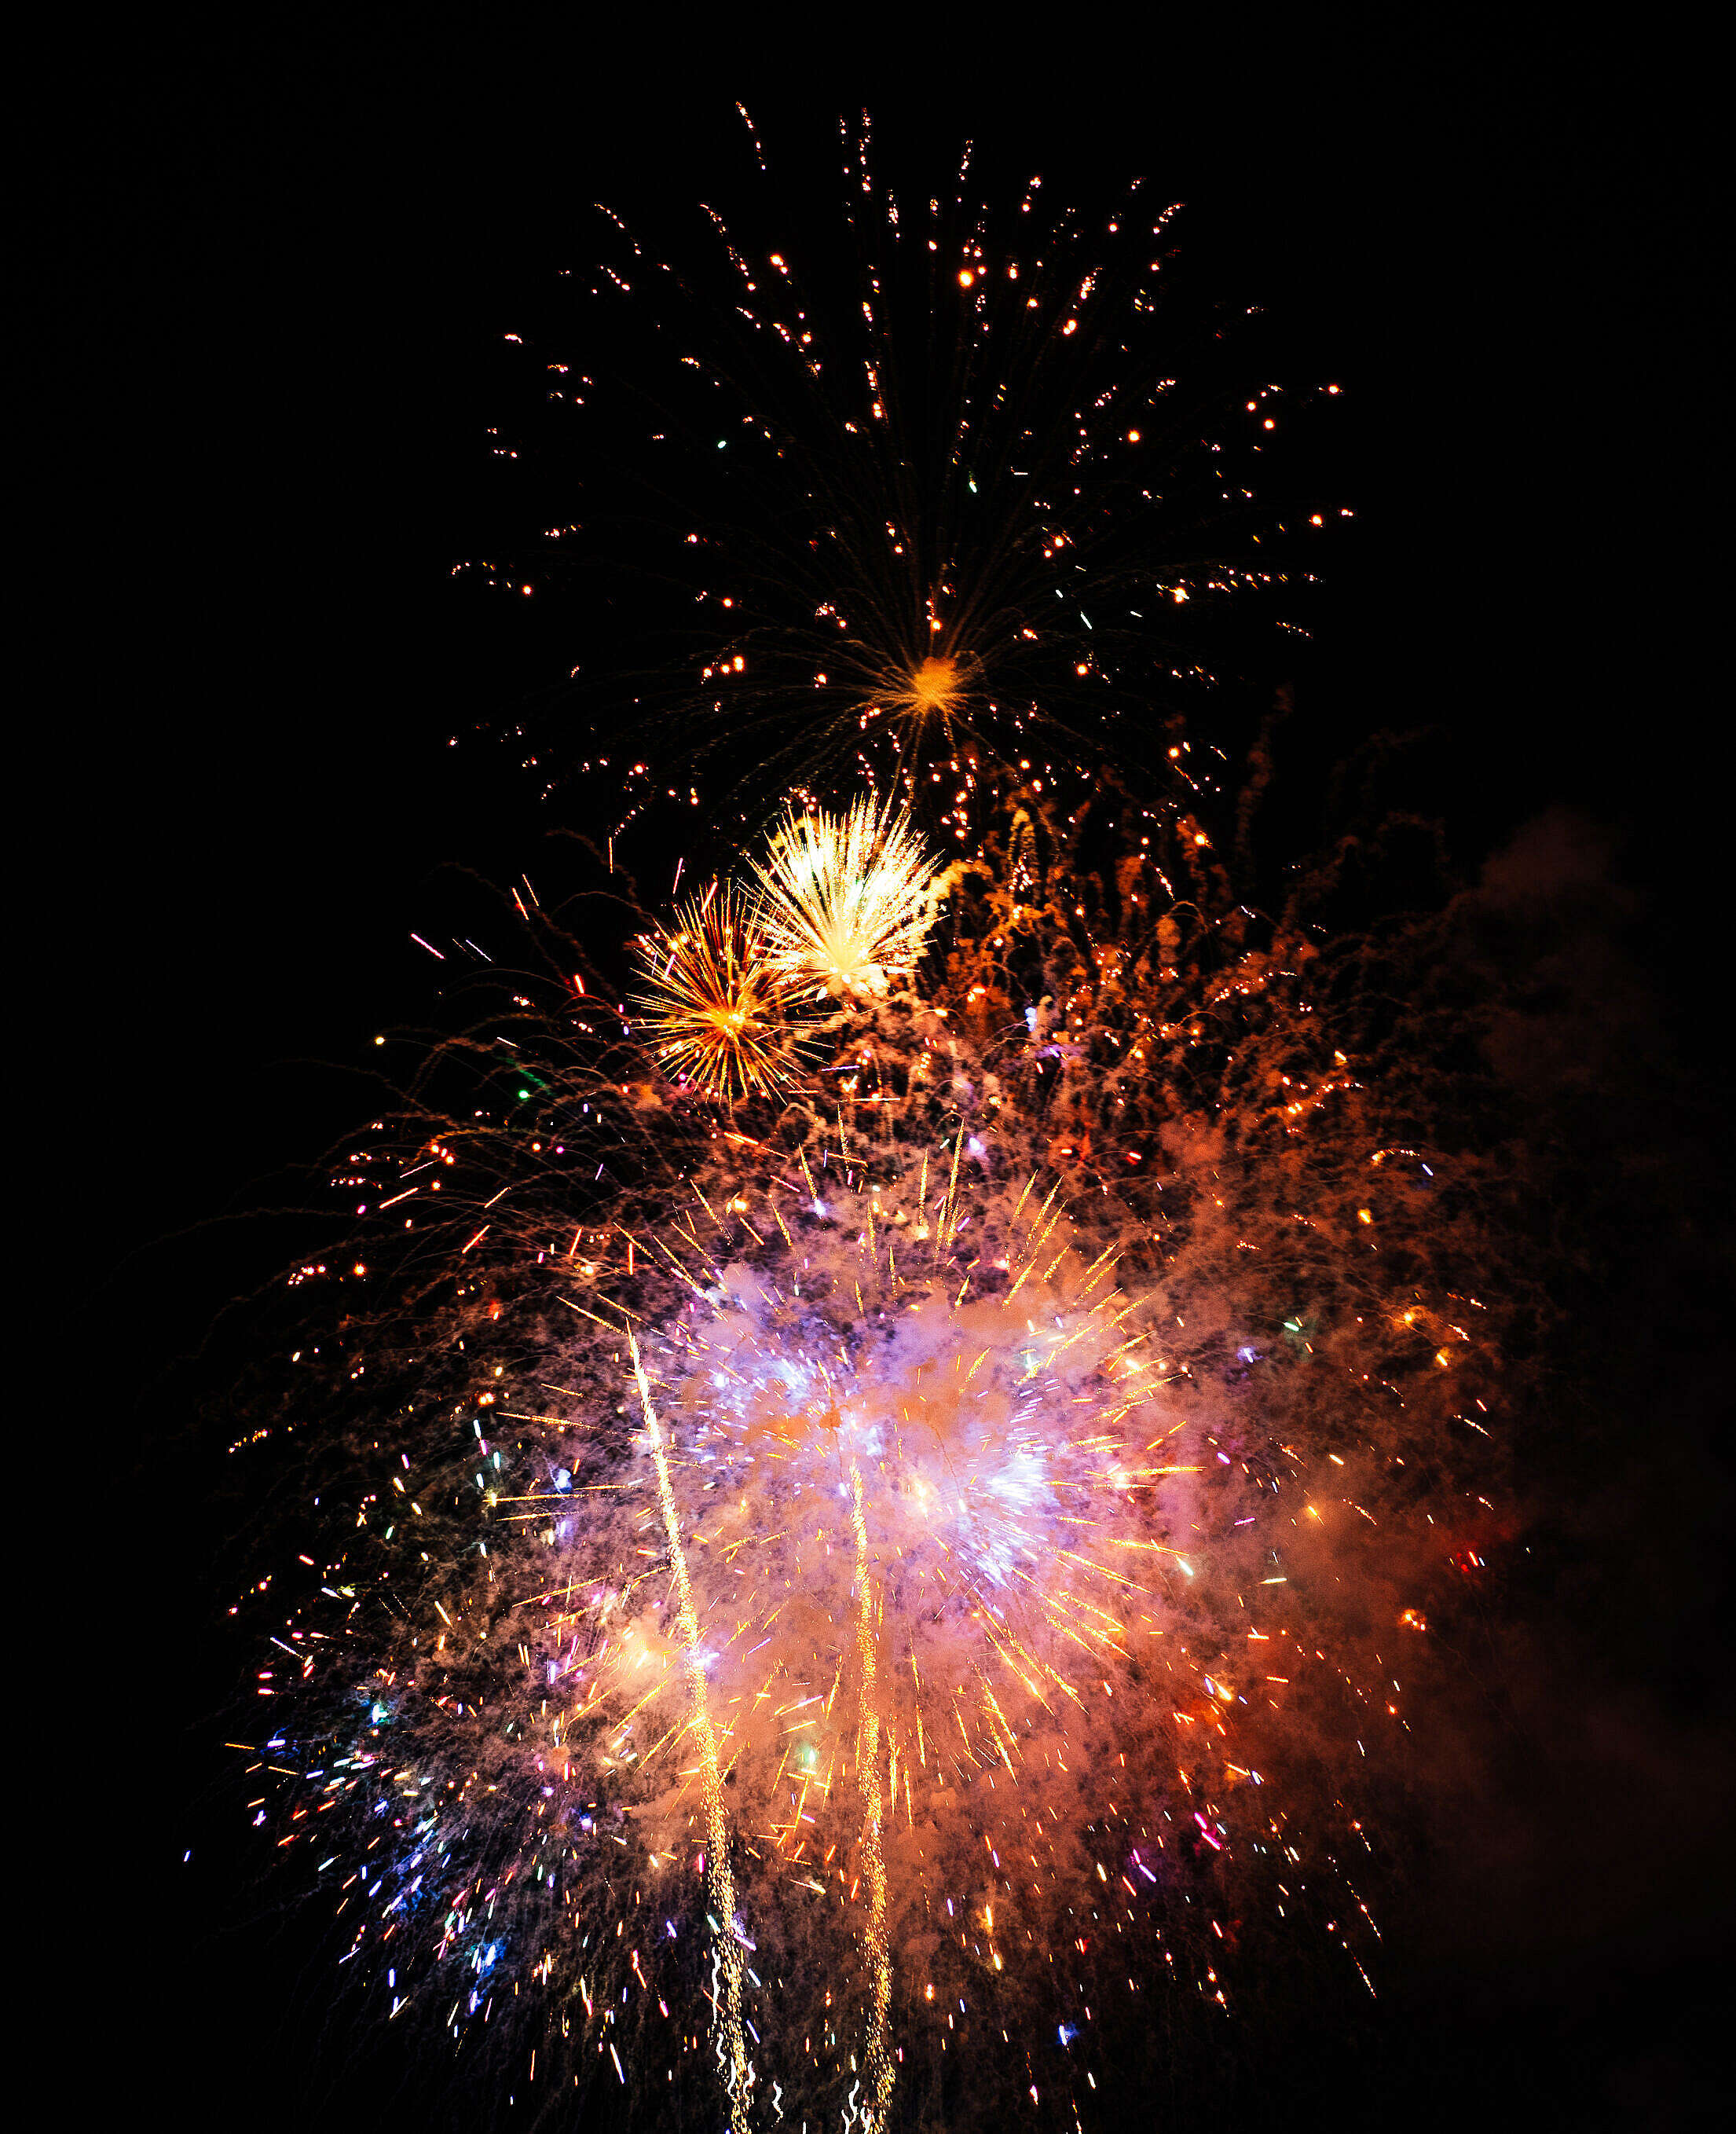 Fireworks Vertical Free Stock Photo